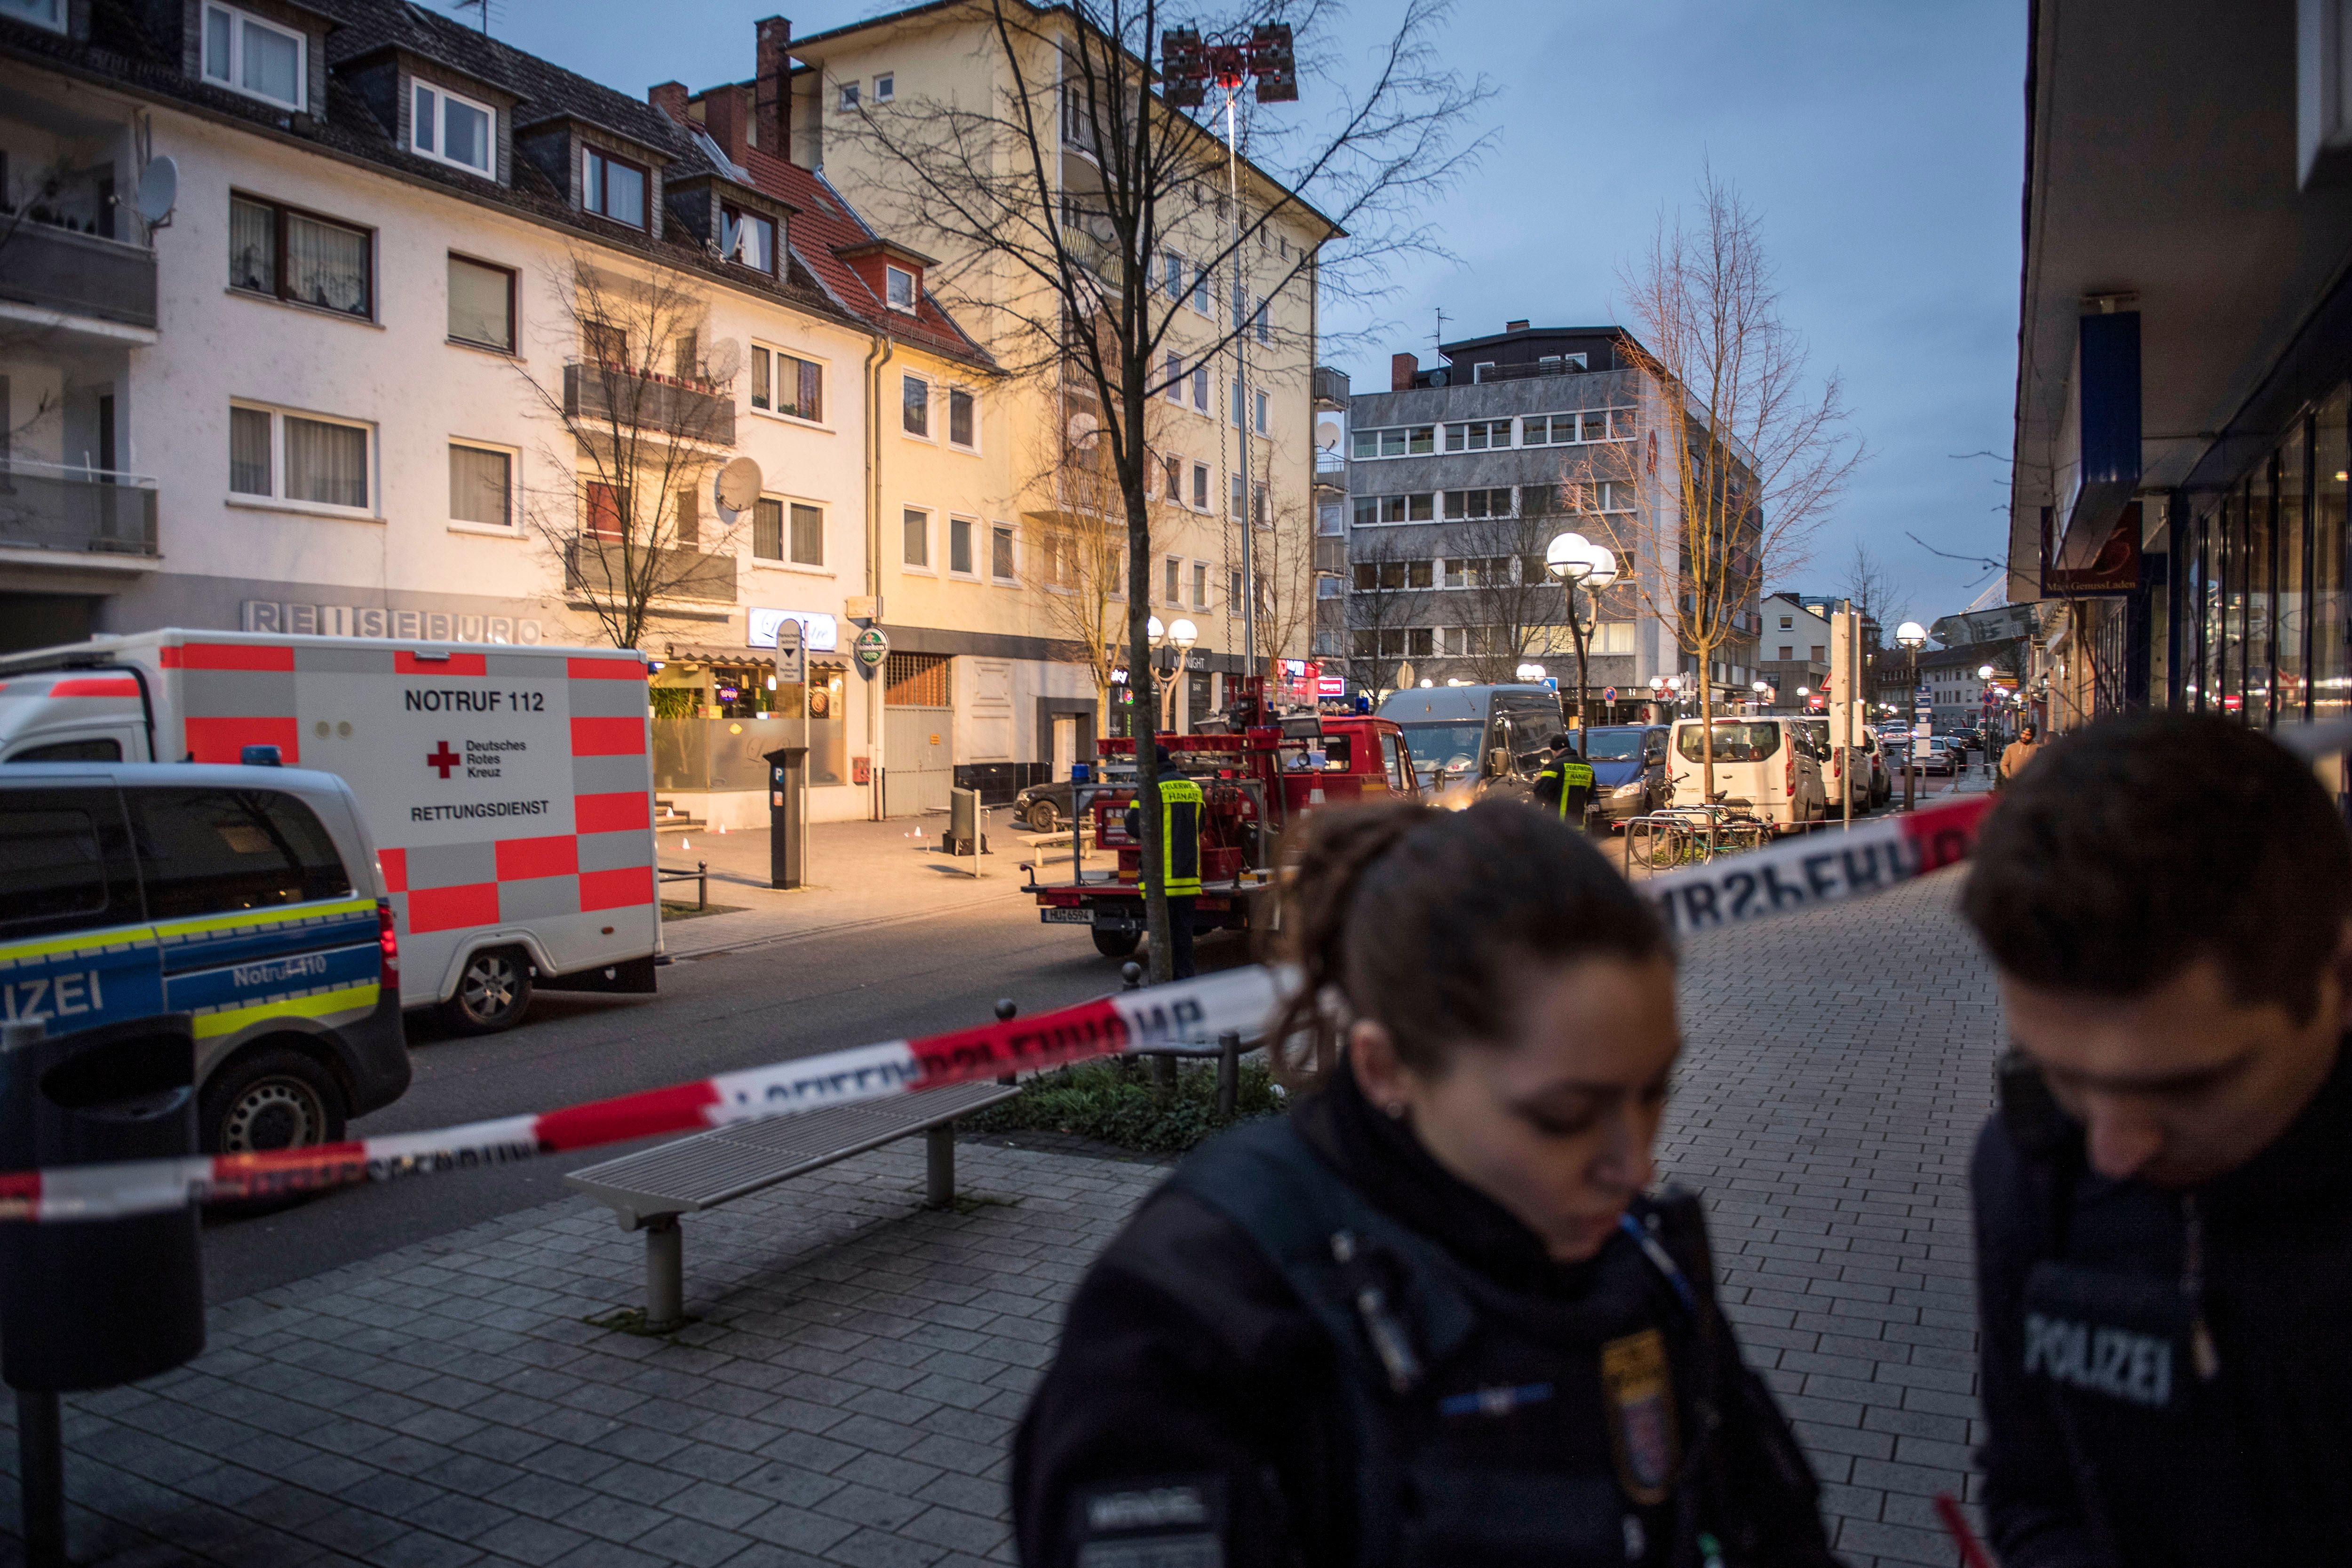 What the mass shooting in Germany tells us about its far-right extremism problem